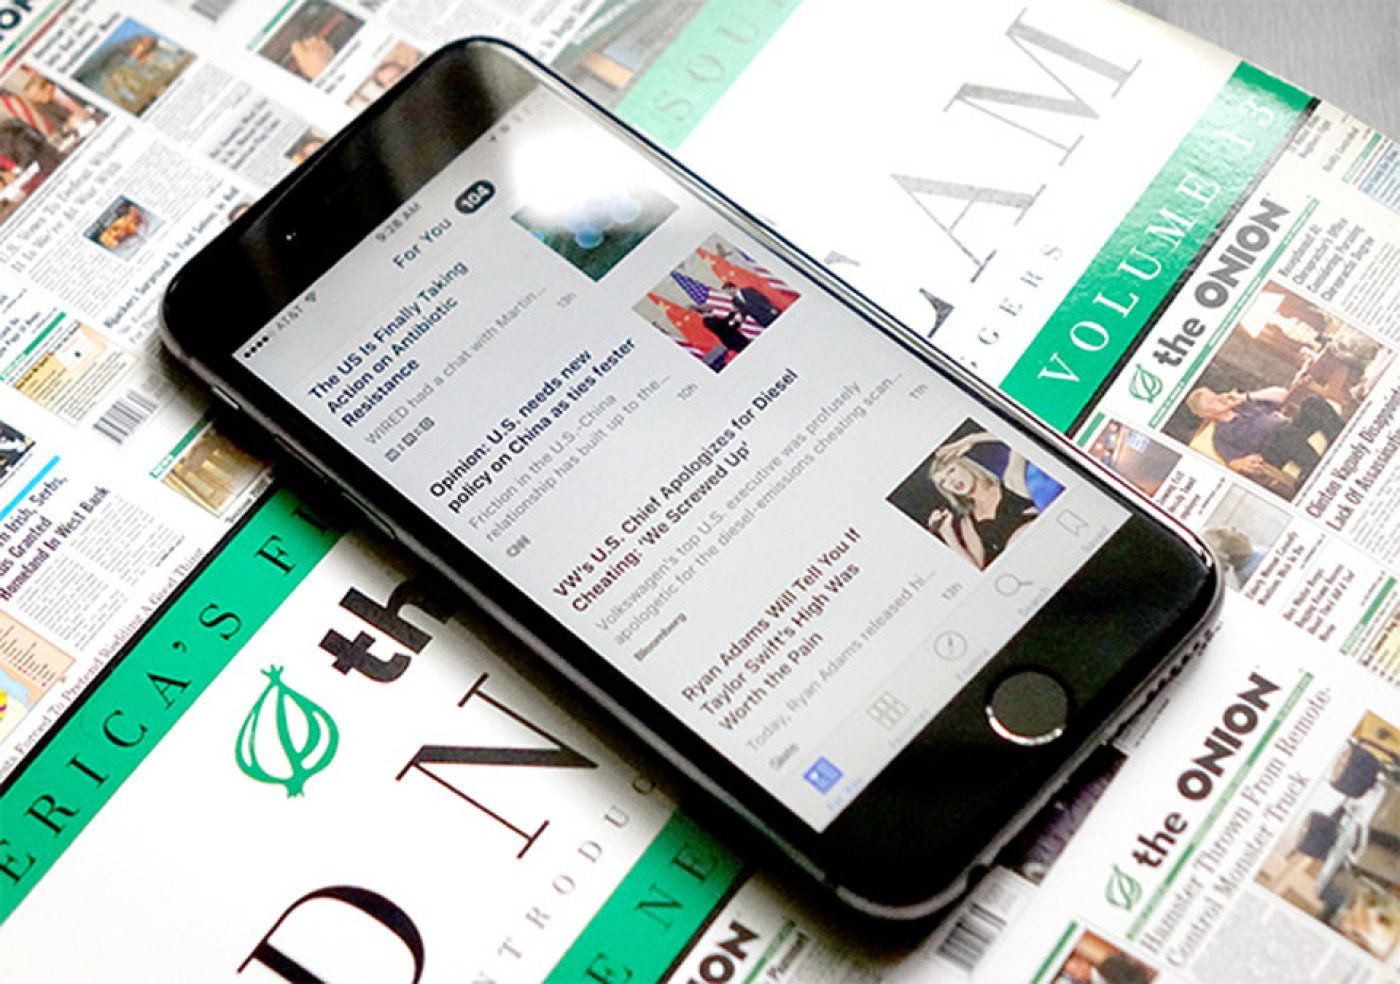 Apple doesn't know how many people are using its News app